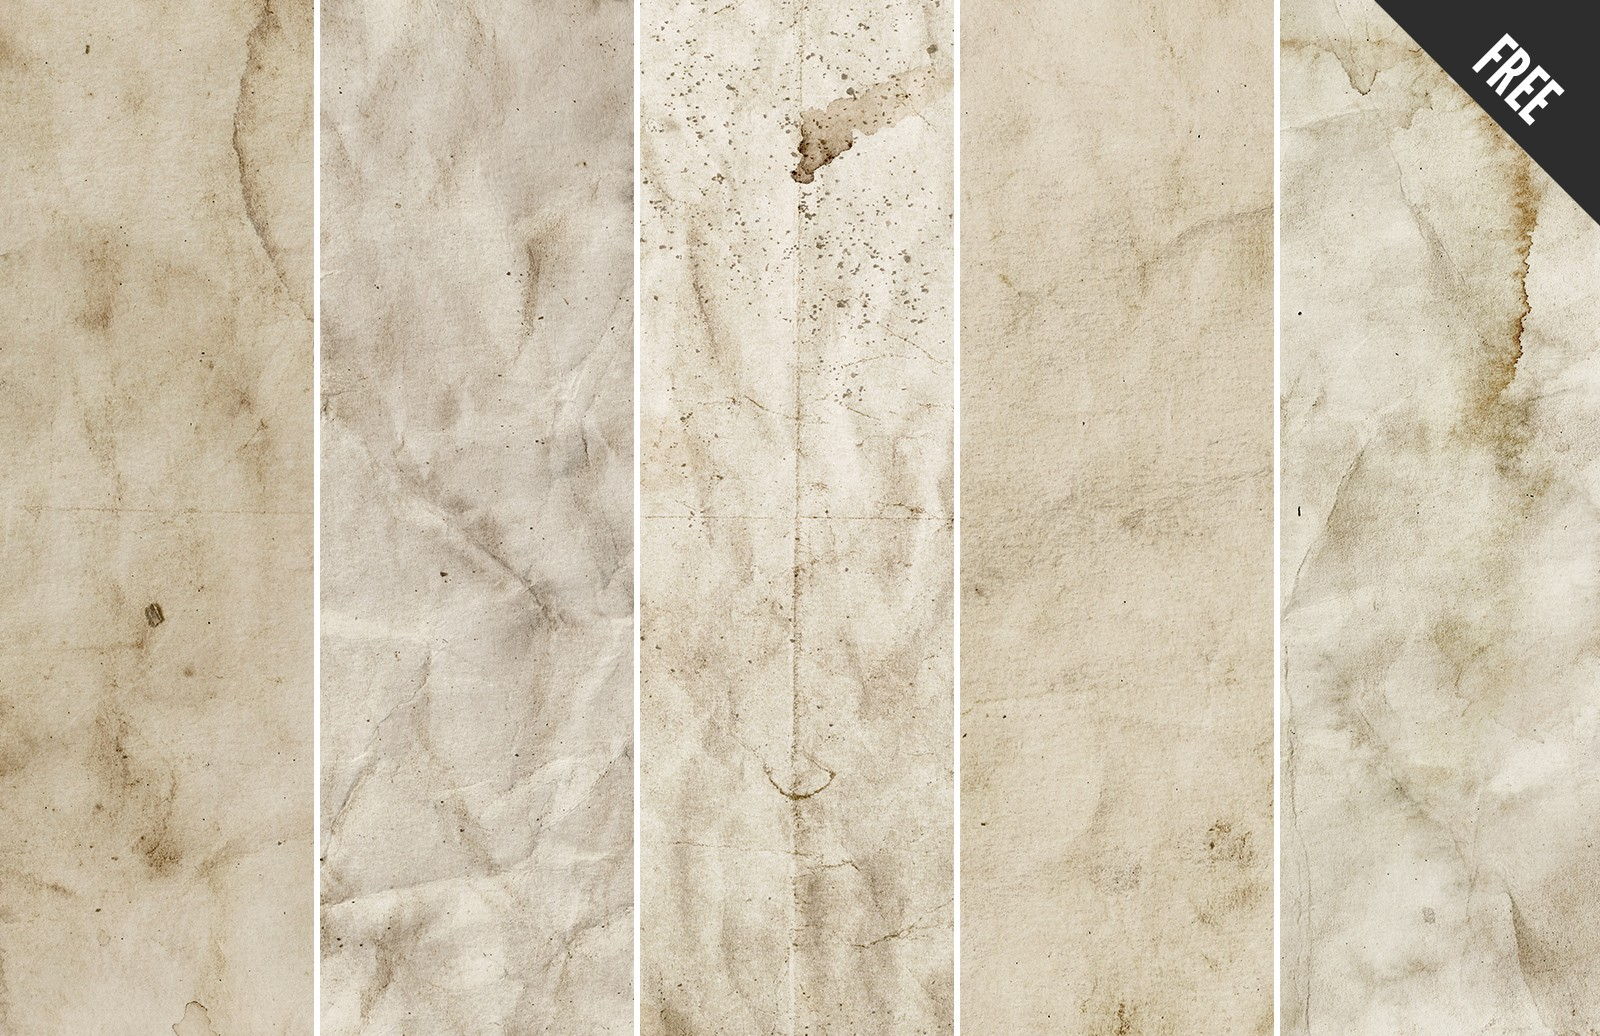 Grunge  Stained  Paper  Textures  Preview 3